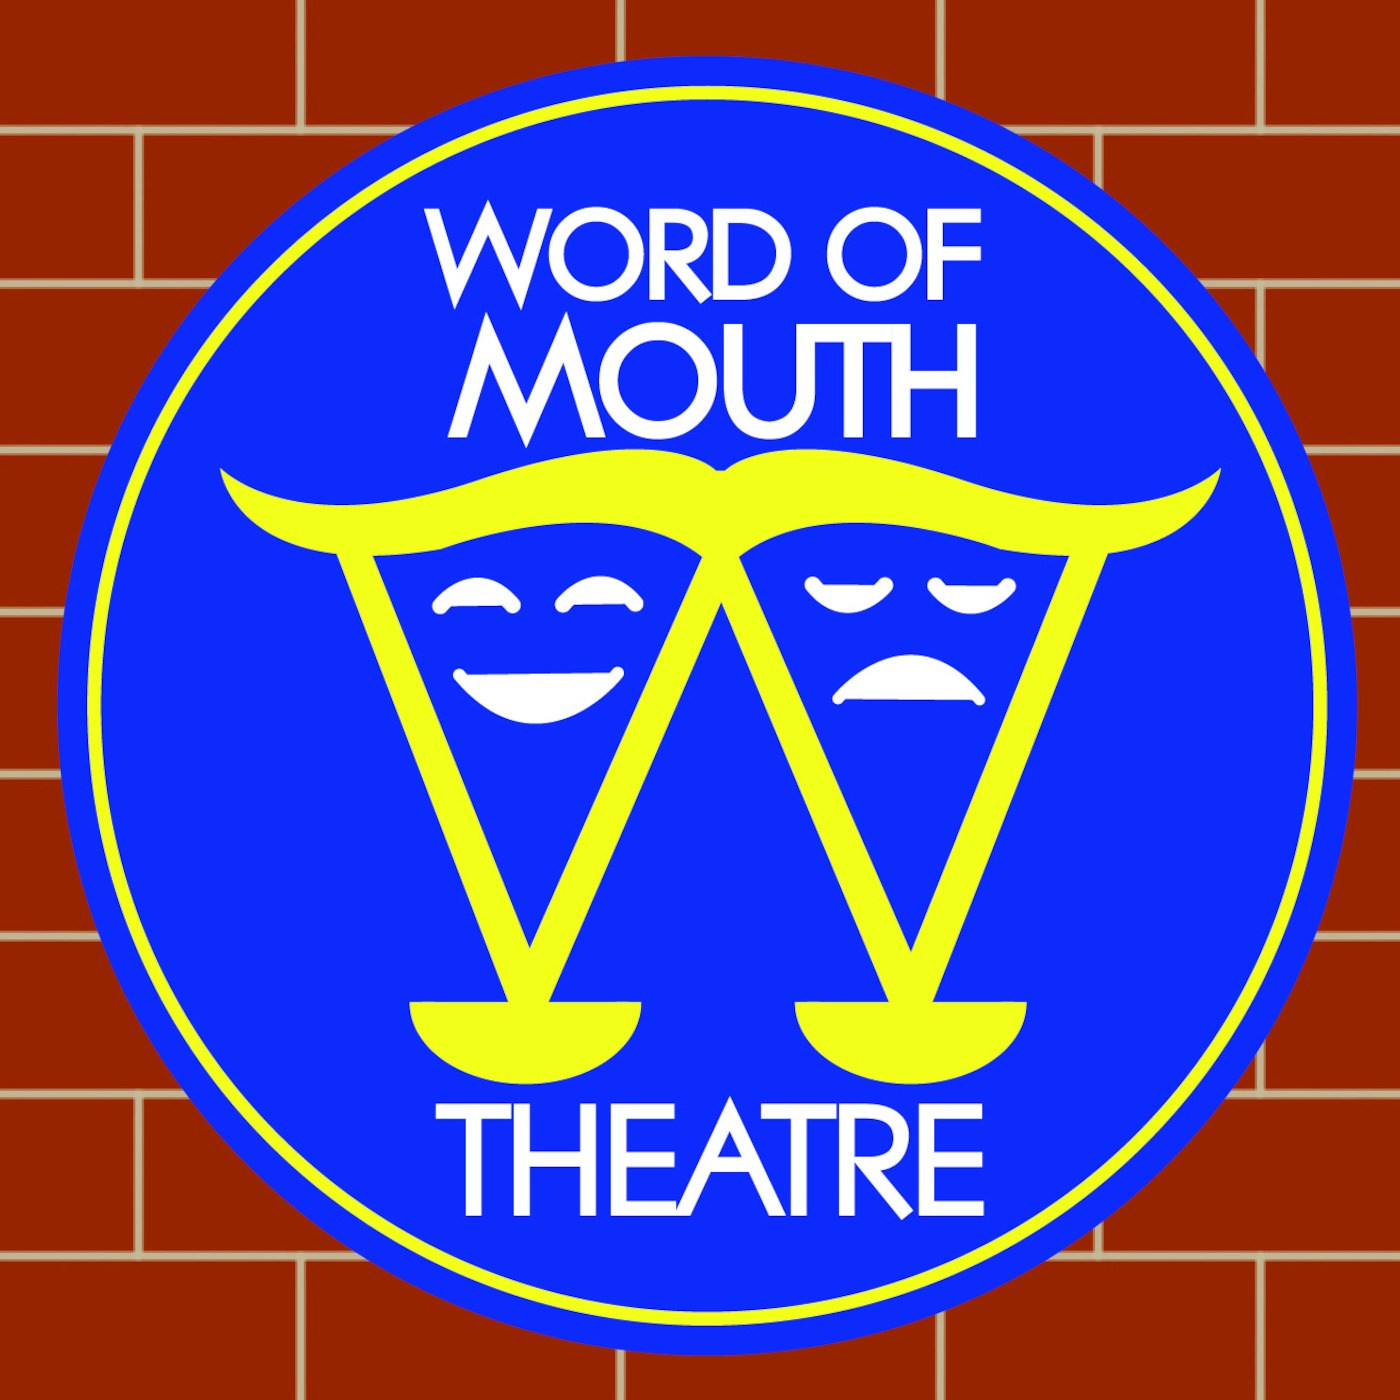 Word of Mouth Theatre: Feb '14